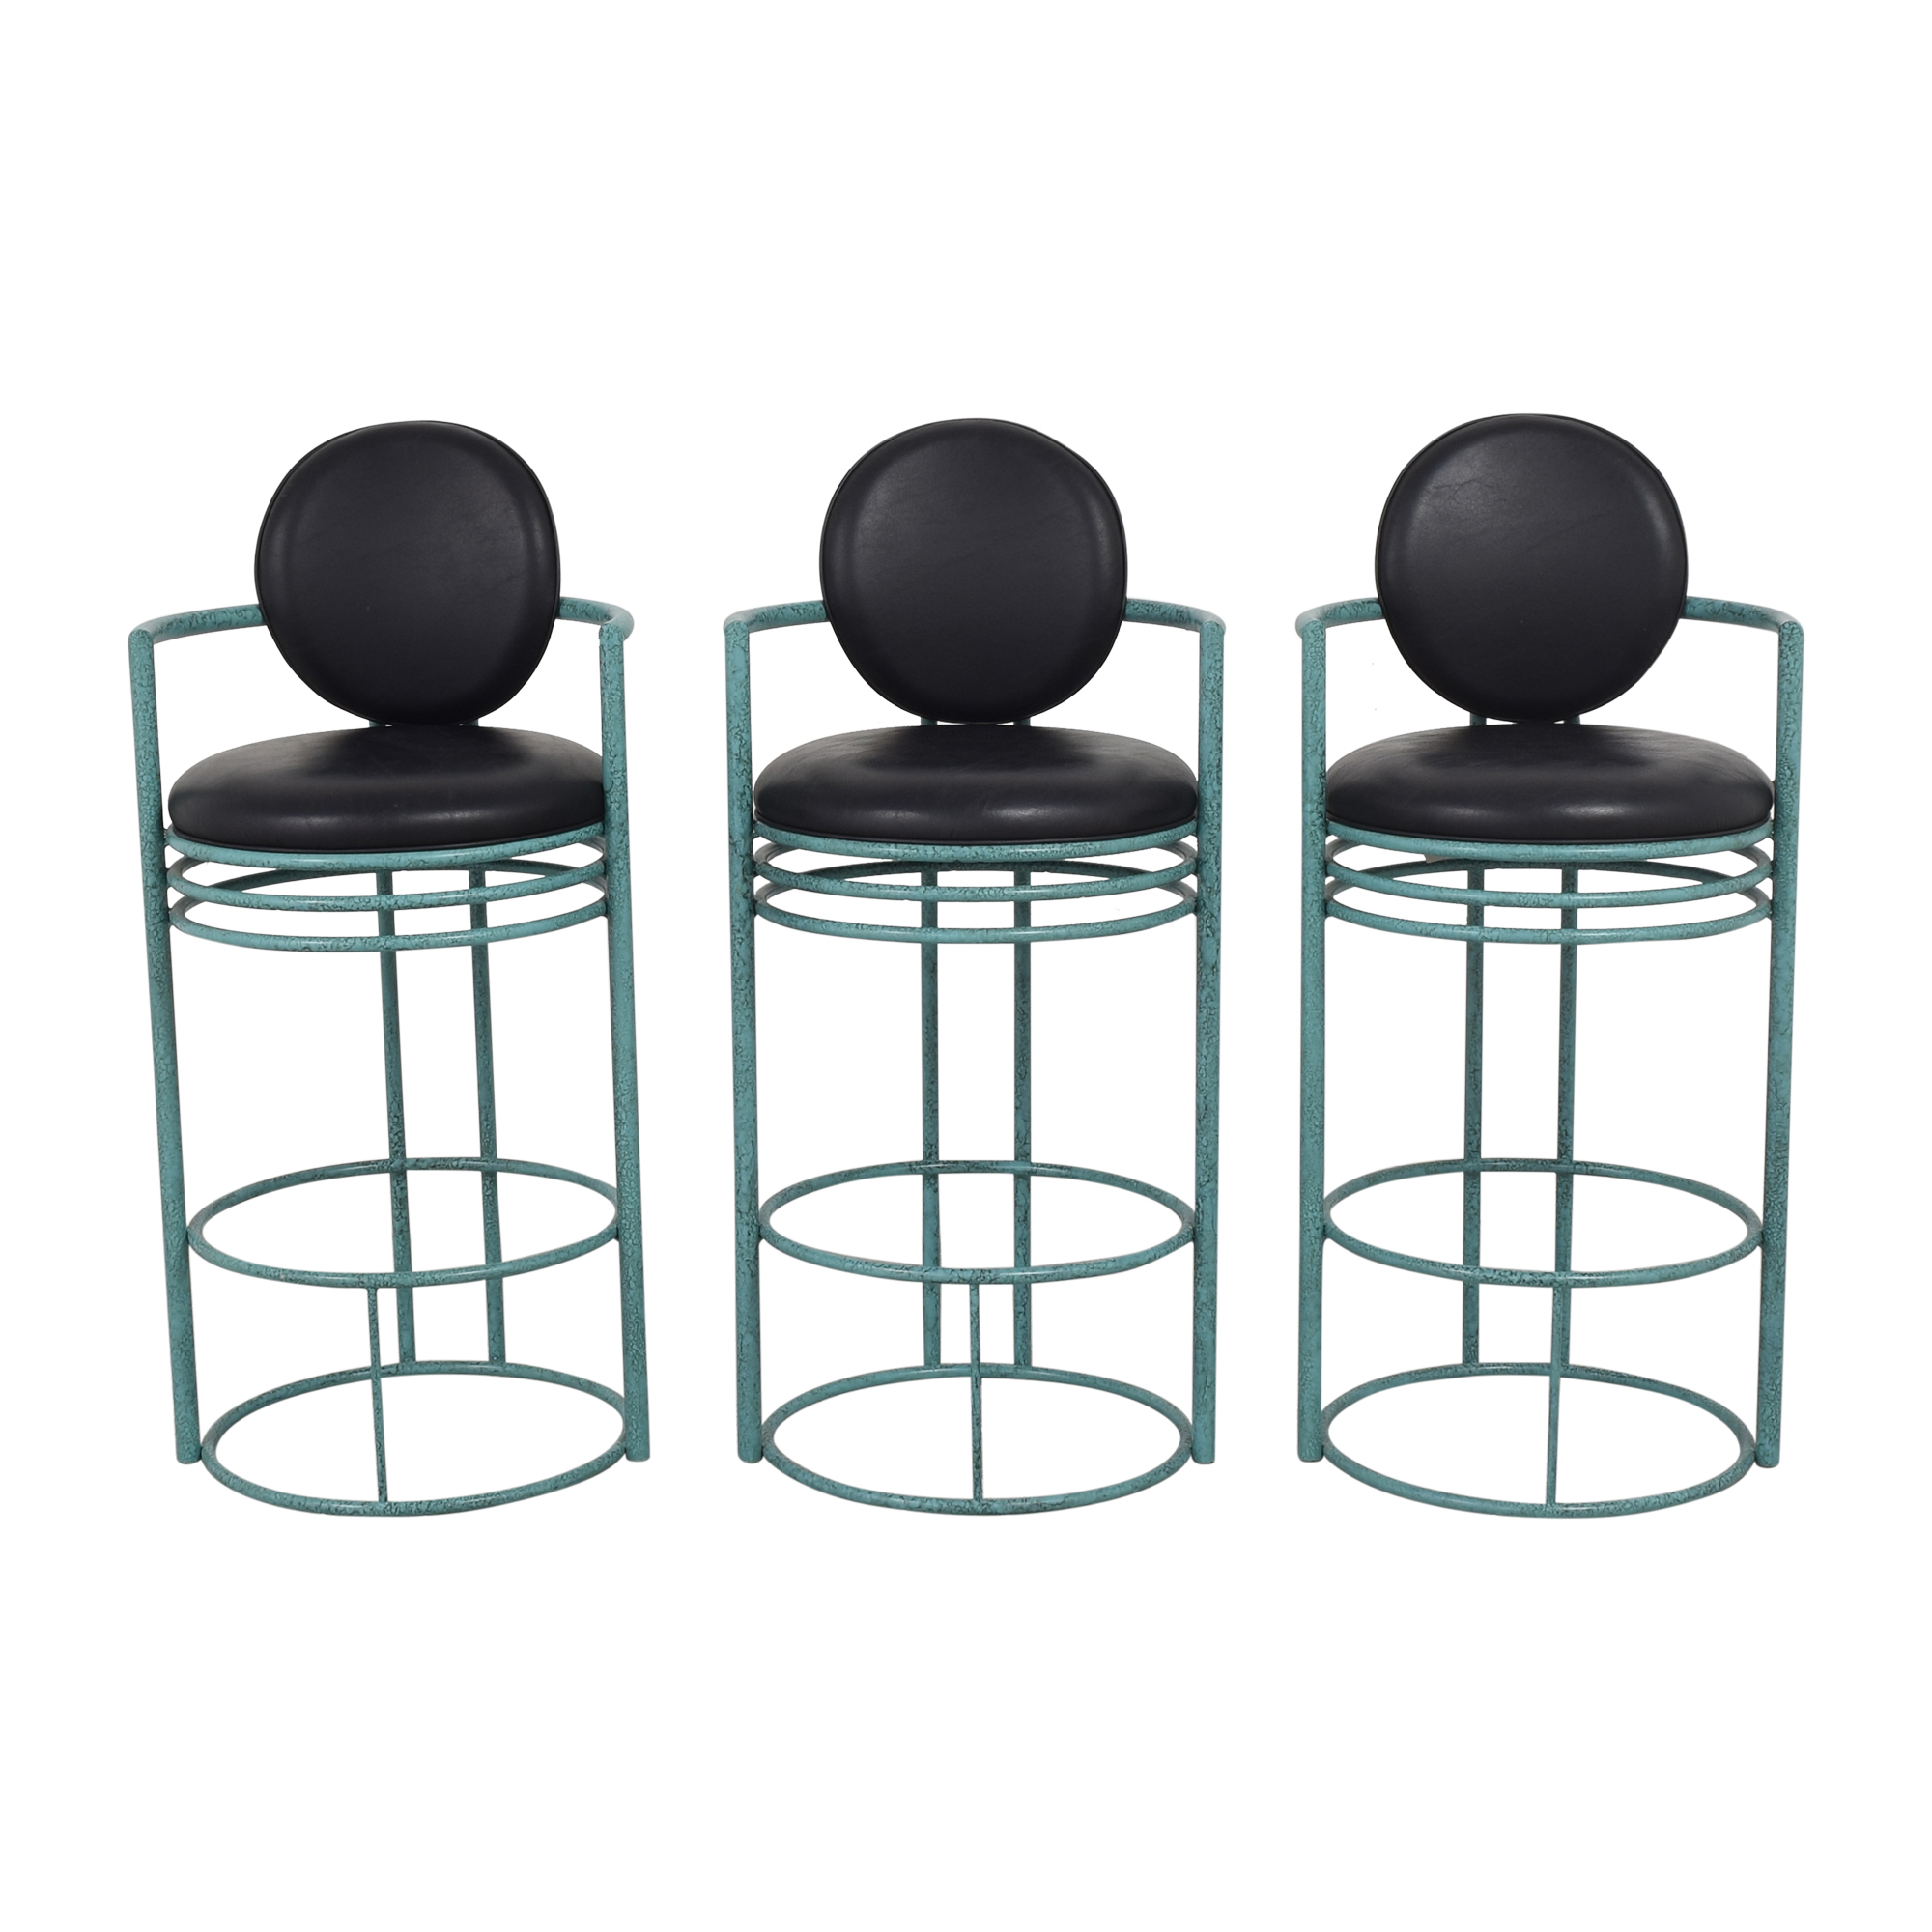 Design Institute America Design Institute America Bar Stools Dining Chairs